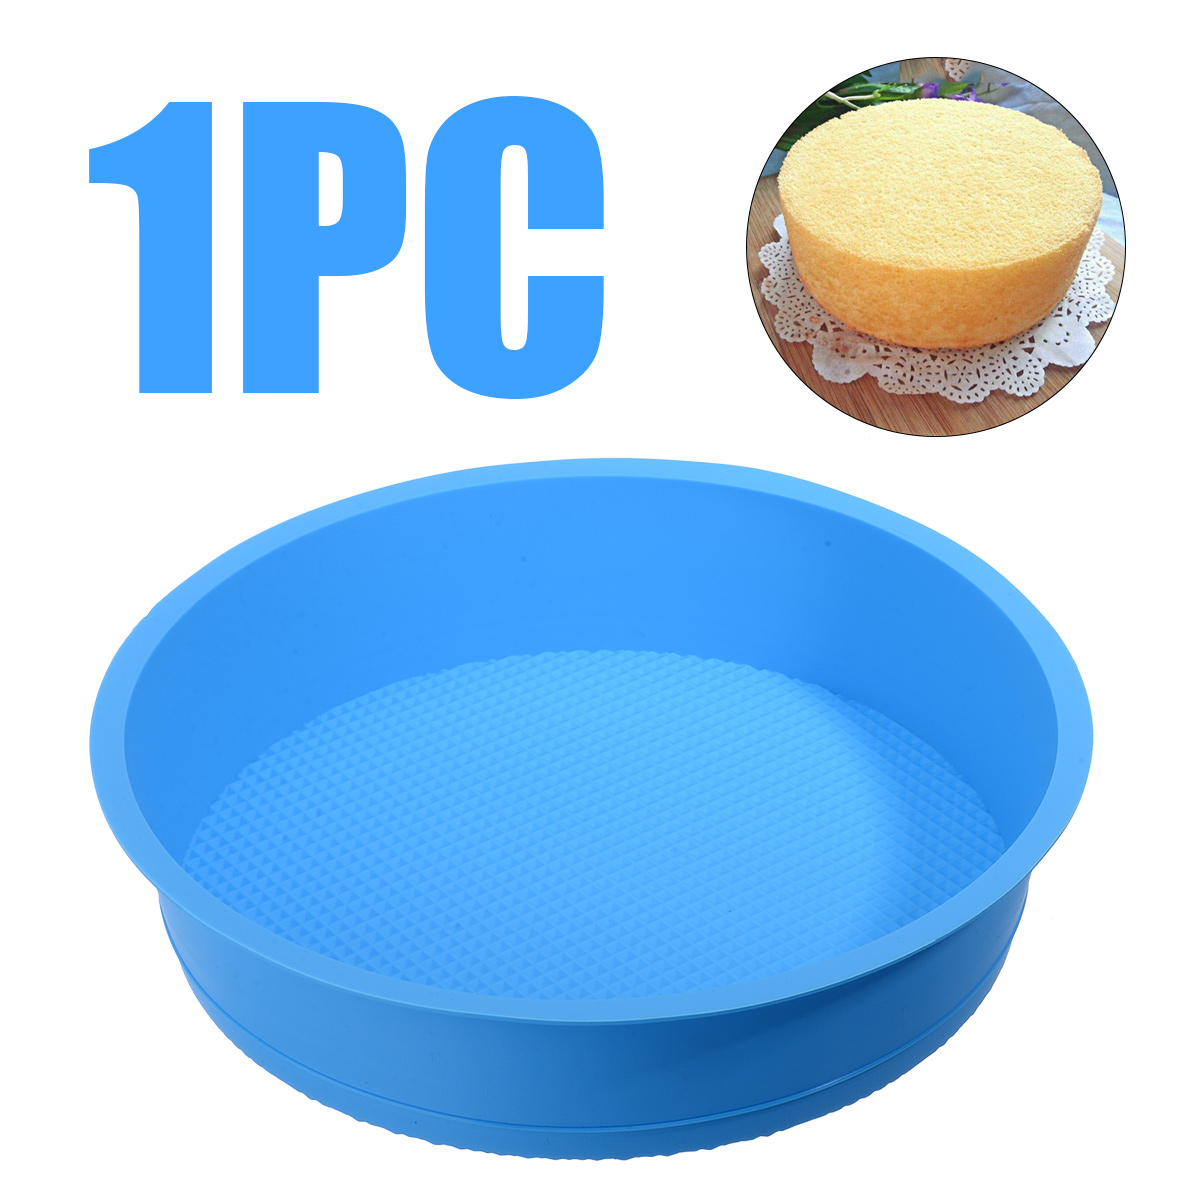 1pcs Silicone <font><b>Round</b></font> <font><b>Cheese</b></font> Cake <font><b>Mold</b></font> Tray Kitchen DIY Fondant Cake Bread Pastry <font><b>Mold</b></font> Pan Heat Resistant Baking Tool 26x5.7cm image